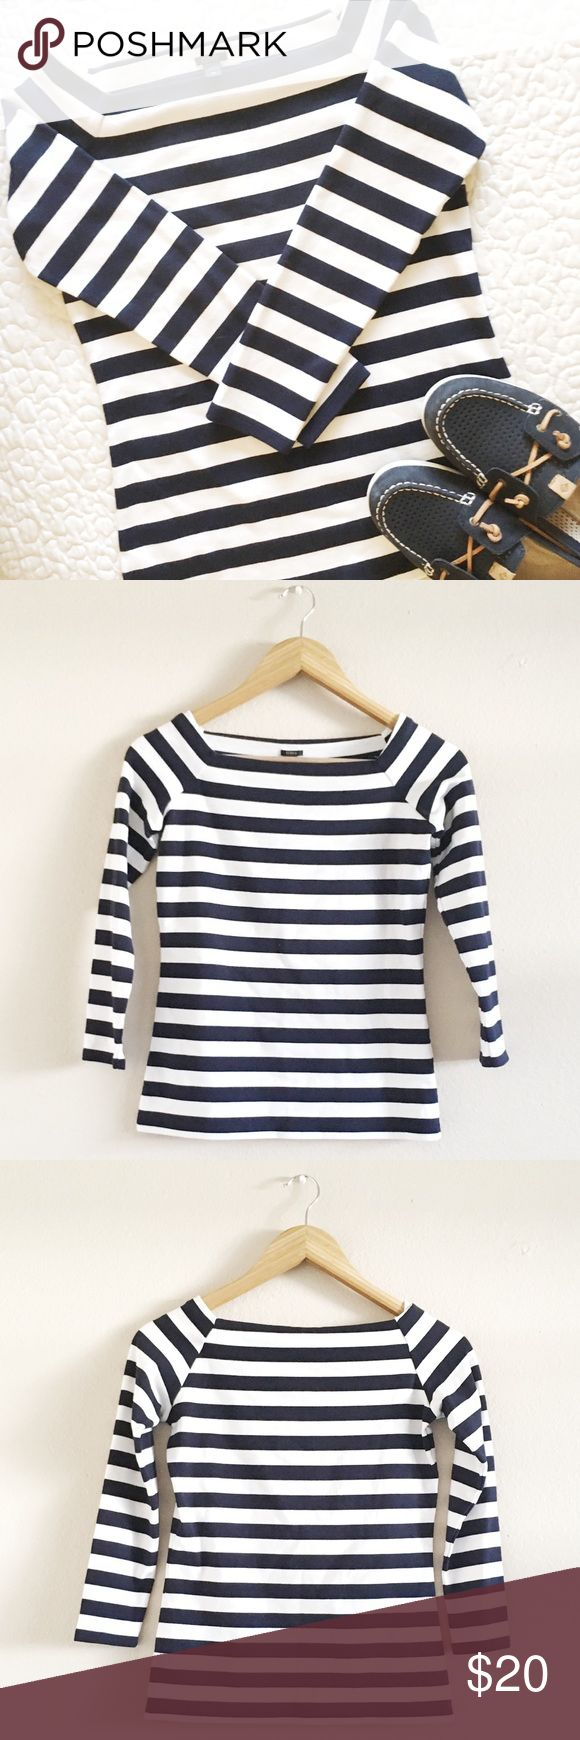 NWT J. Crew Bardot Boatneck Top - Retail $33 This clean cut J Crew top has a nautical, sophisticated look. Extremely versatile, wear with a pair of jeans and boat shoes or dress it up with a pleated skirt and red flats.   •New with tags •Retails for $33 •3/4 length sleeves   💜 J. Crew Tops Tees - Long Sleeve